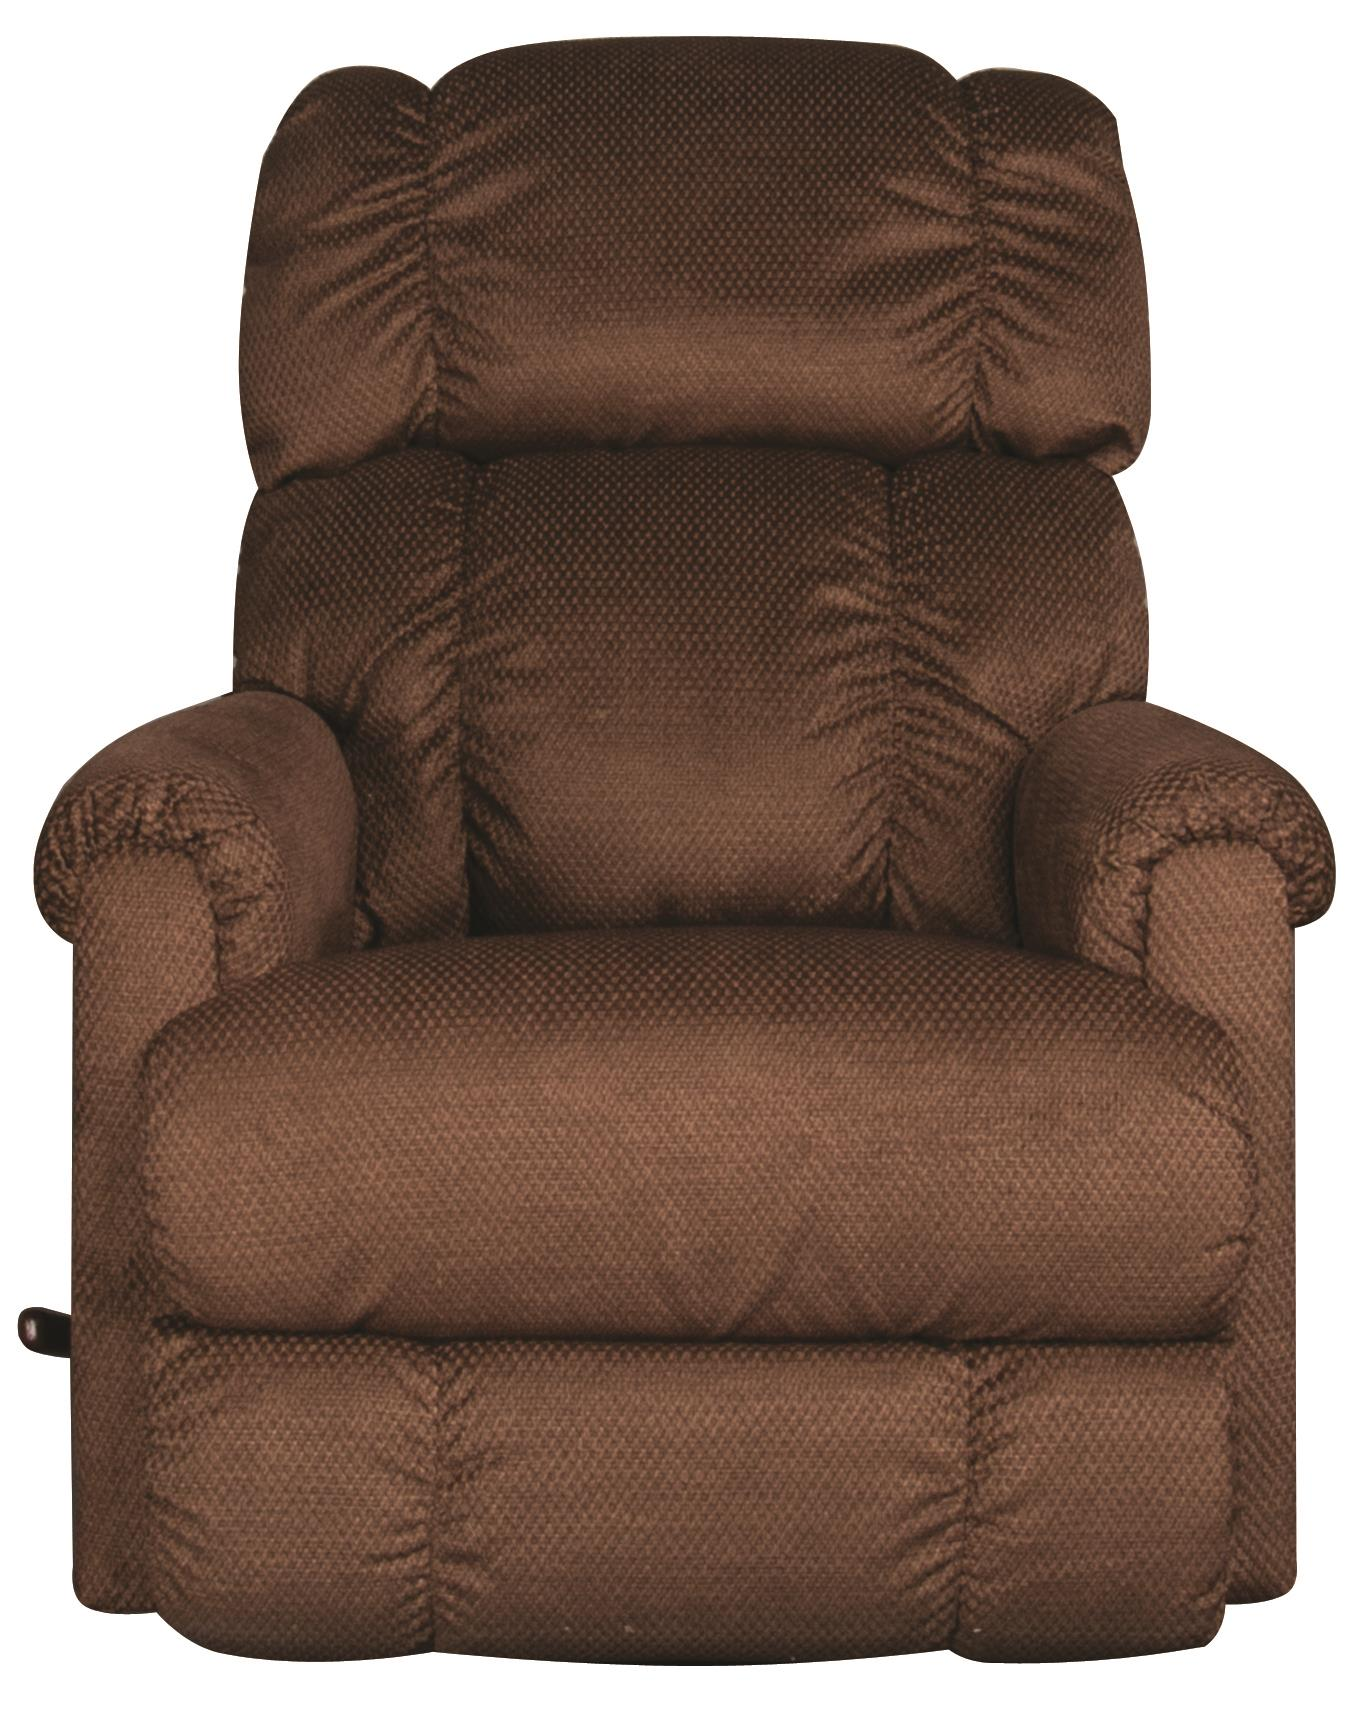 La-Z-Boy Pinnacle Pinnacle Rocker Recliner - Item Number: 189804132